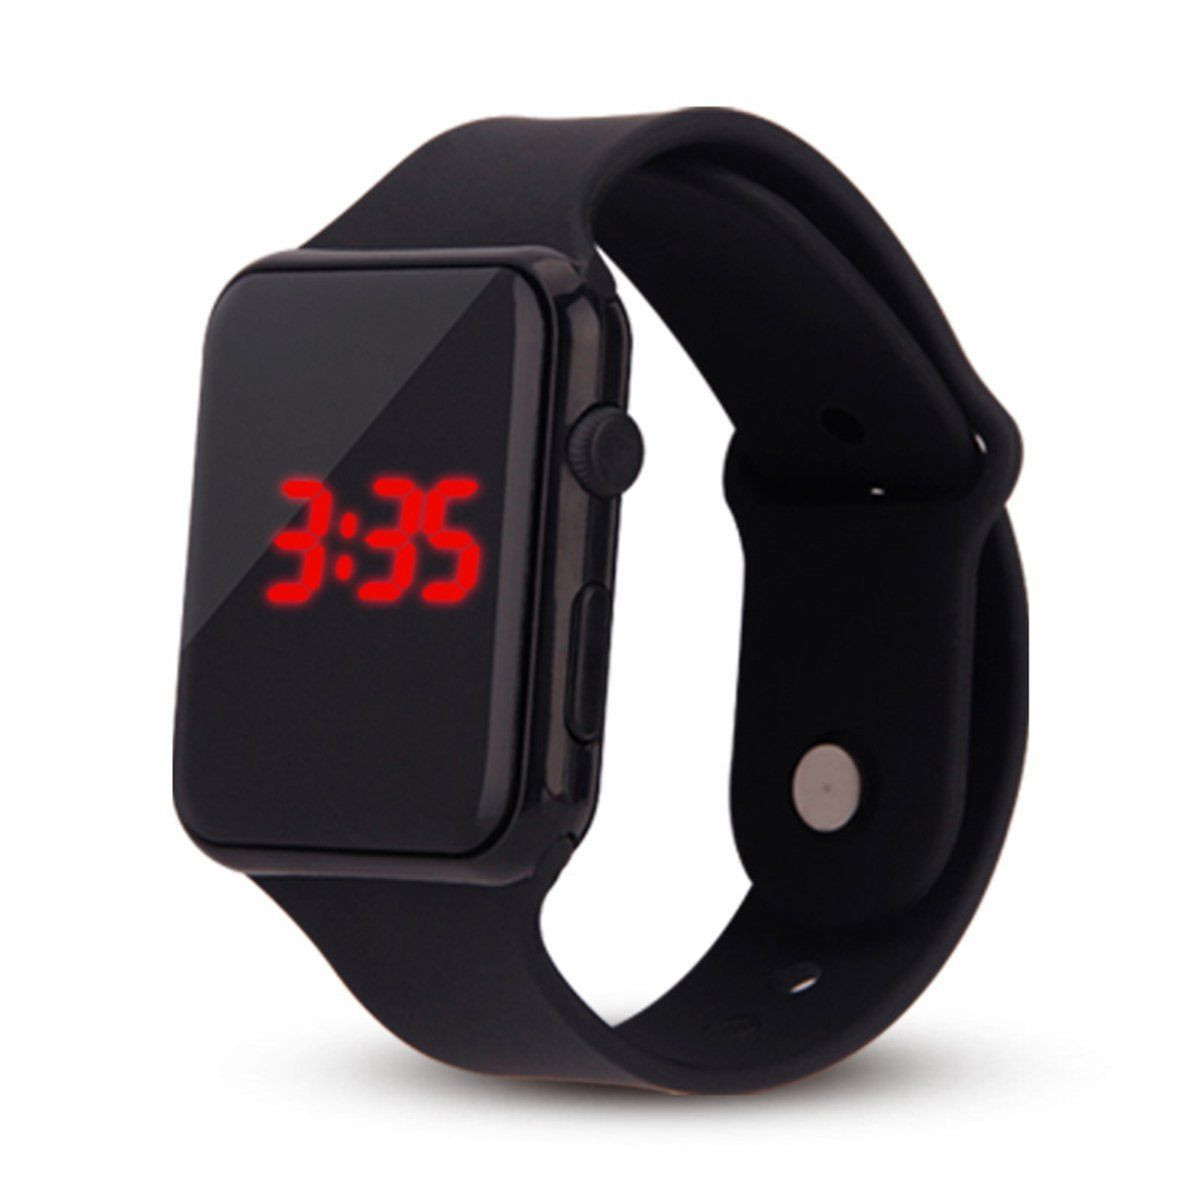 Men Sports LED Watches Men Digital Watch Men Watch Silicone Electronic Wristwatches Electronic Clock Hodinky digital relogio Y5 y5 goral